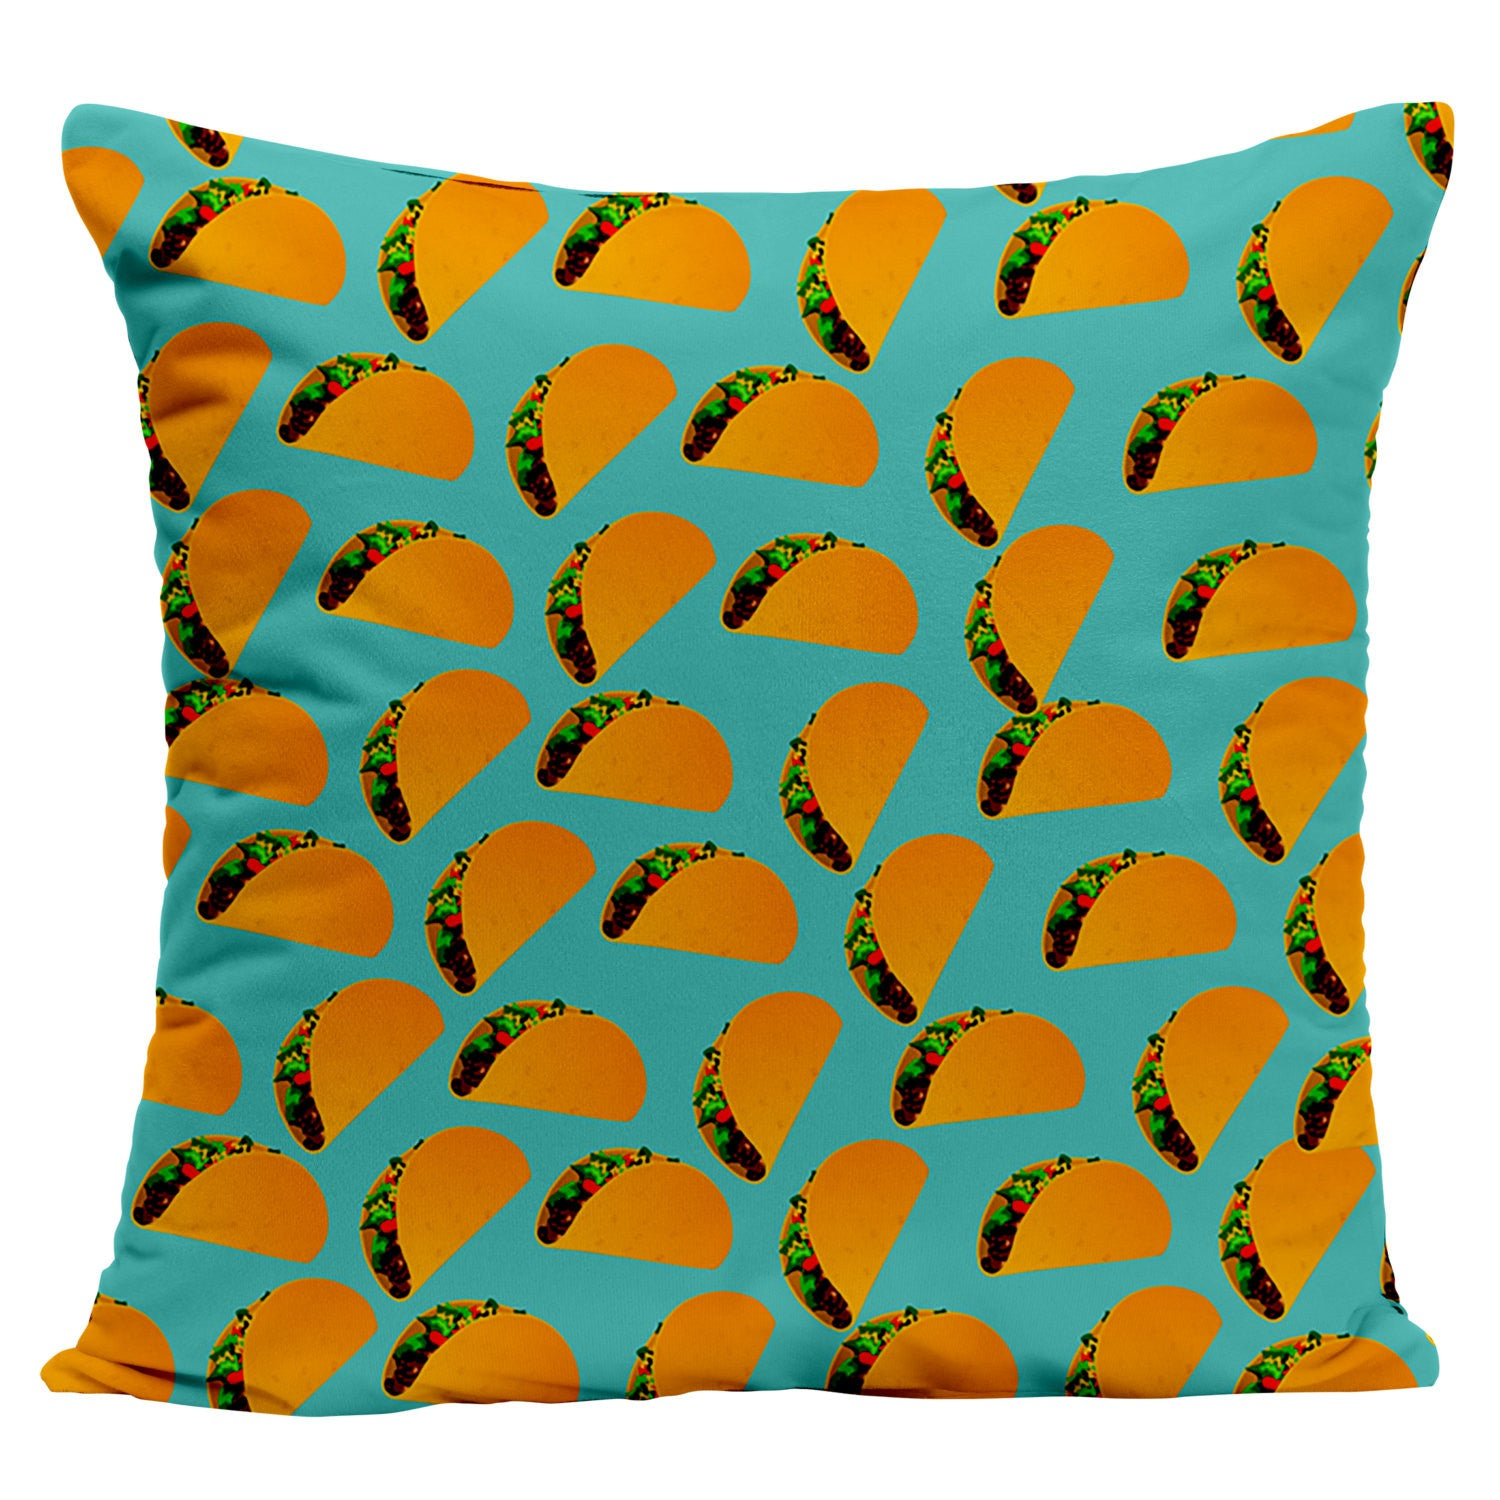 Tacos Pillow - Shweeet